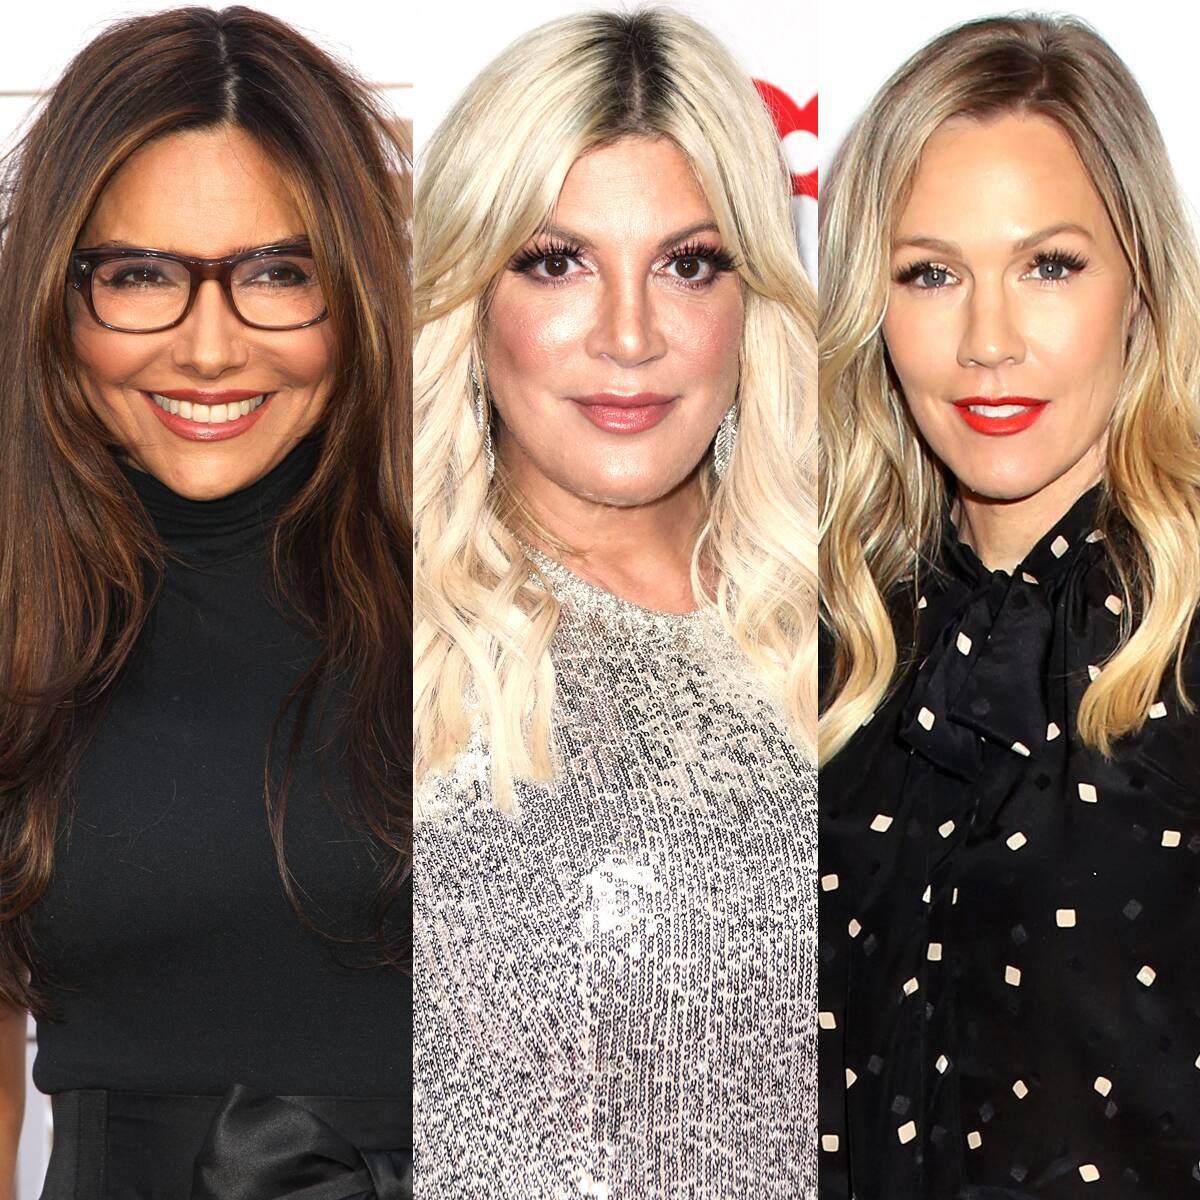 """Tori Spelling and Jennie Garth React to Vanessa Marcil's 90210 """"Cattiness"""" Claims"""